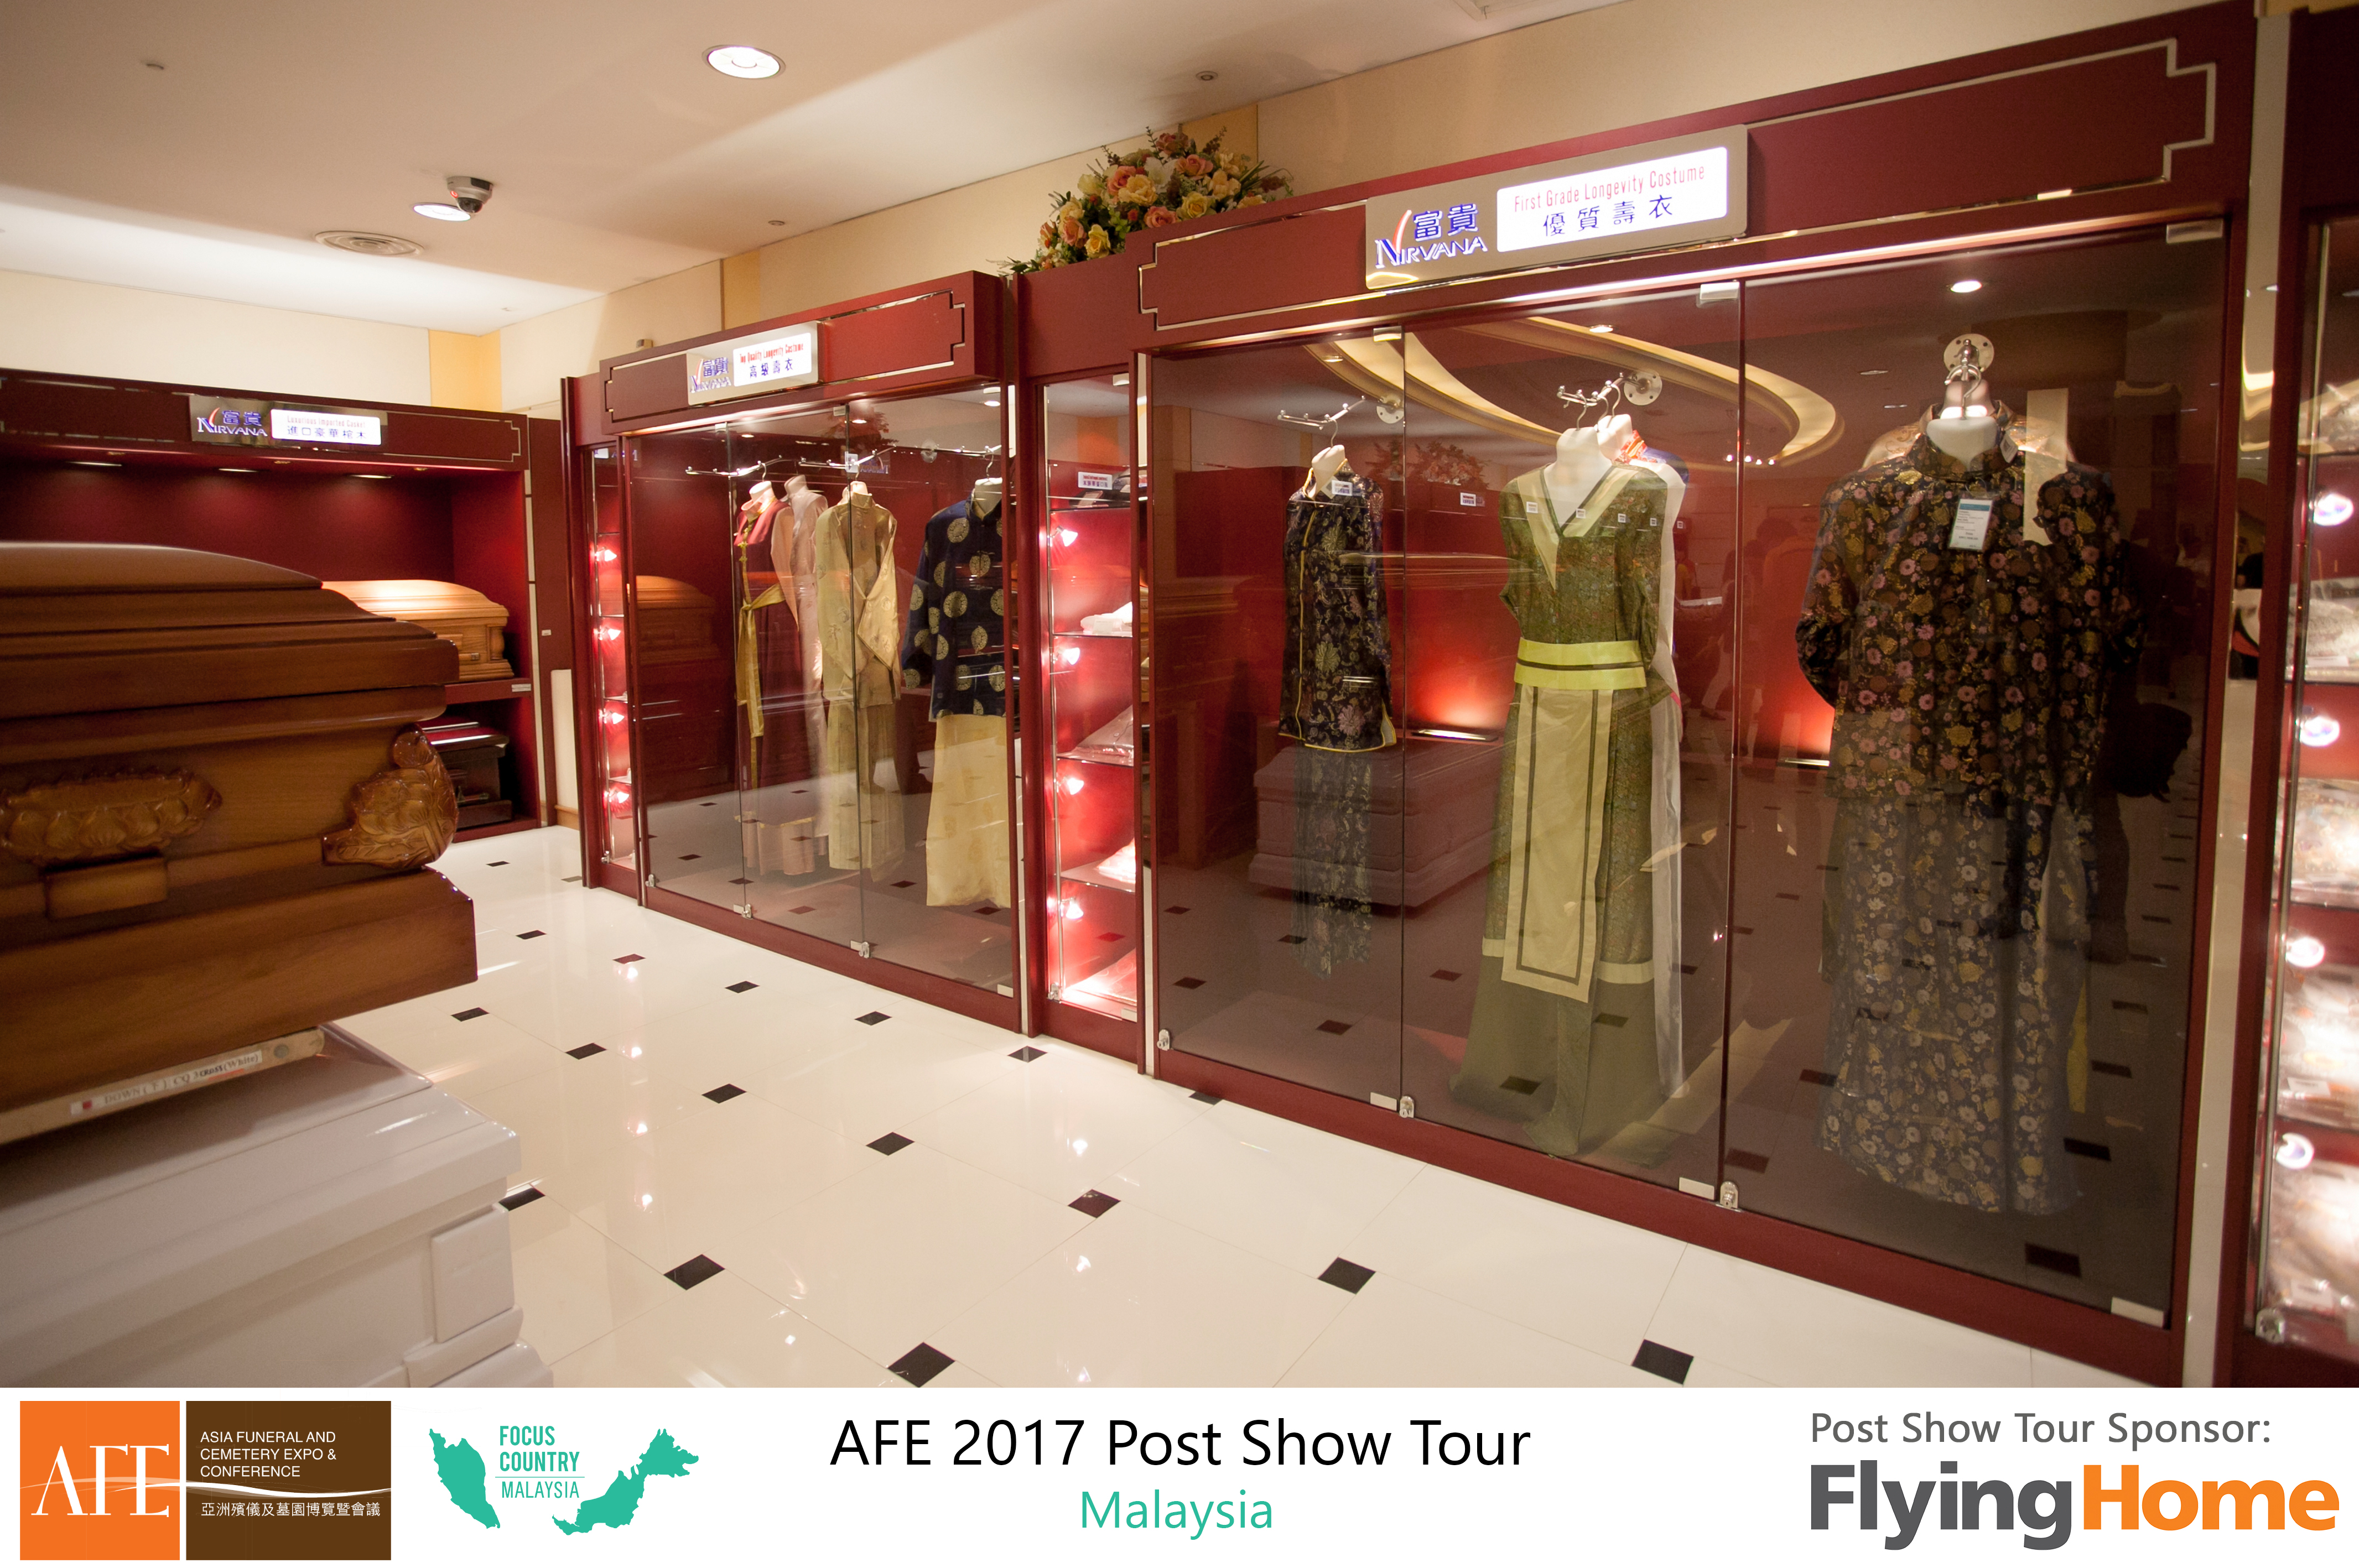 AFE Post Show Tour 2017 Day 2 - 86